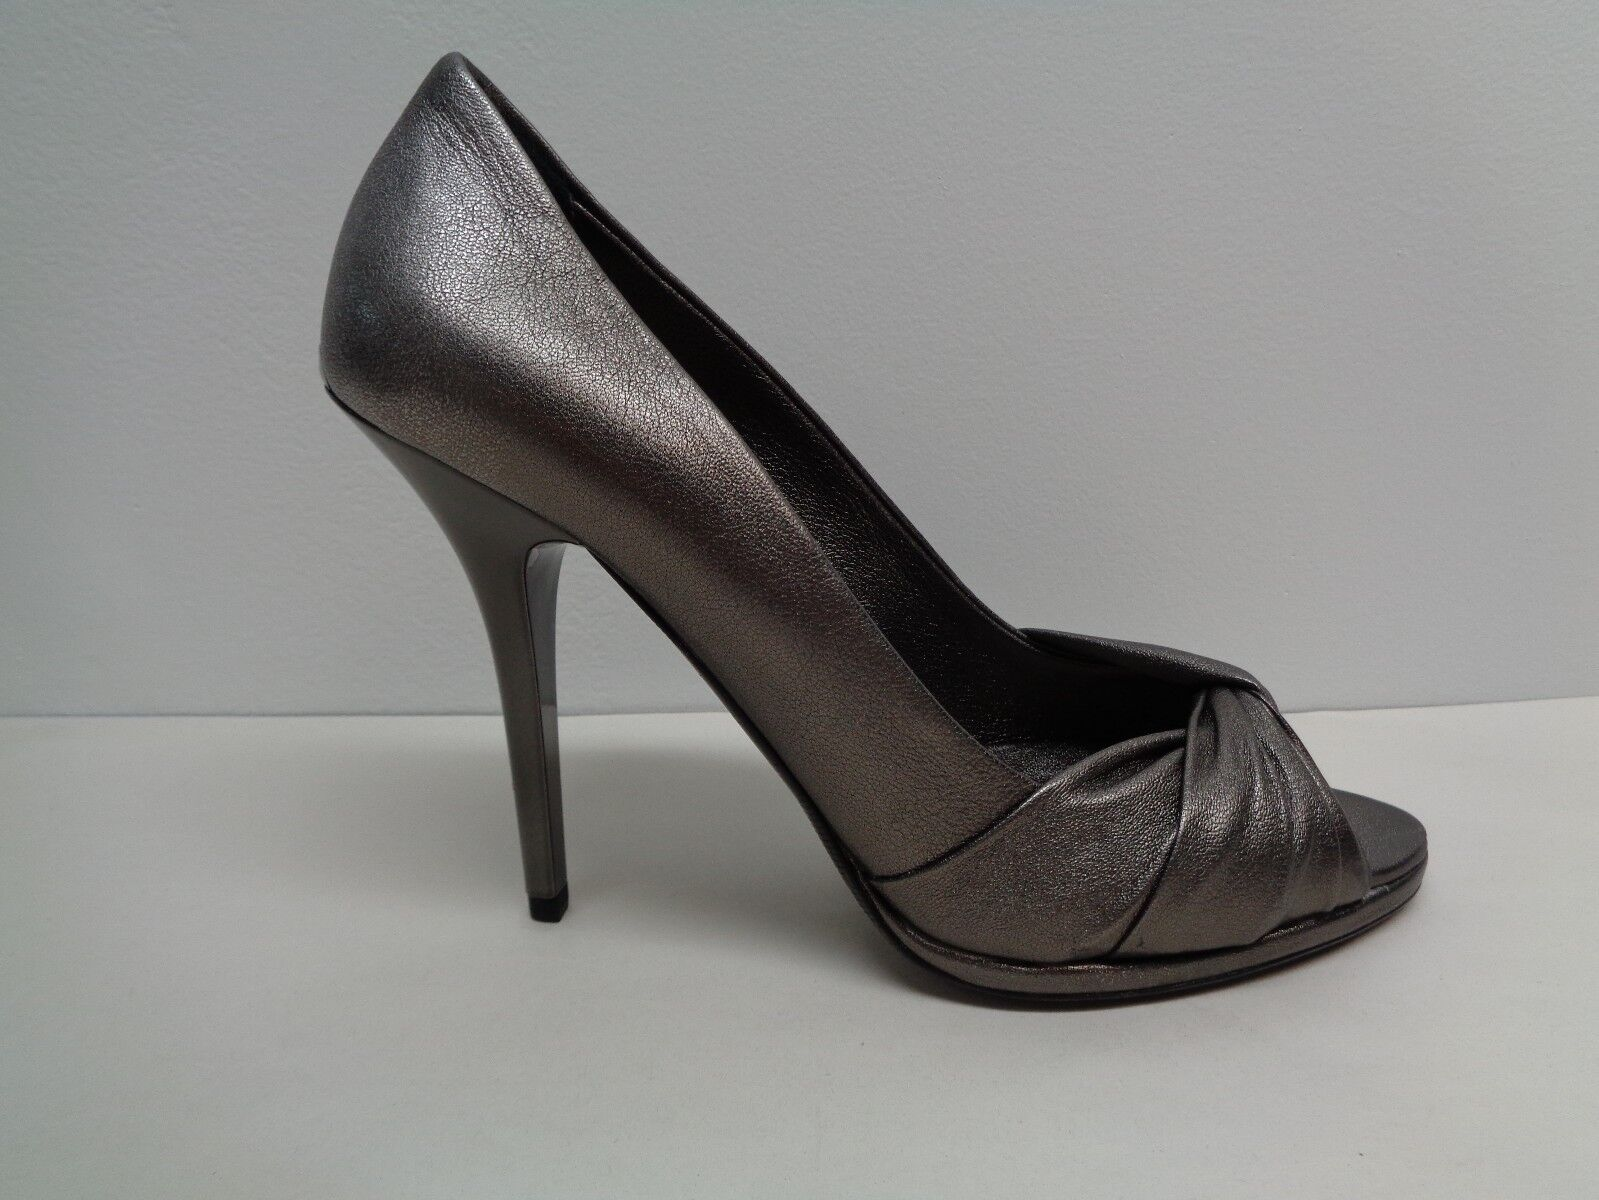 Burberry Size 9.5 Eur 39.5 Dark Nickel Leather Pumps Heels New Womens Shoes